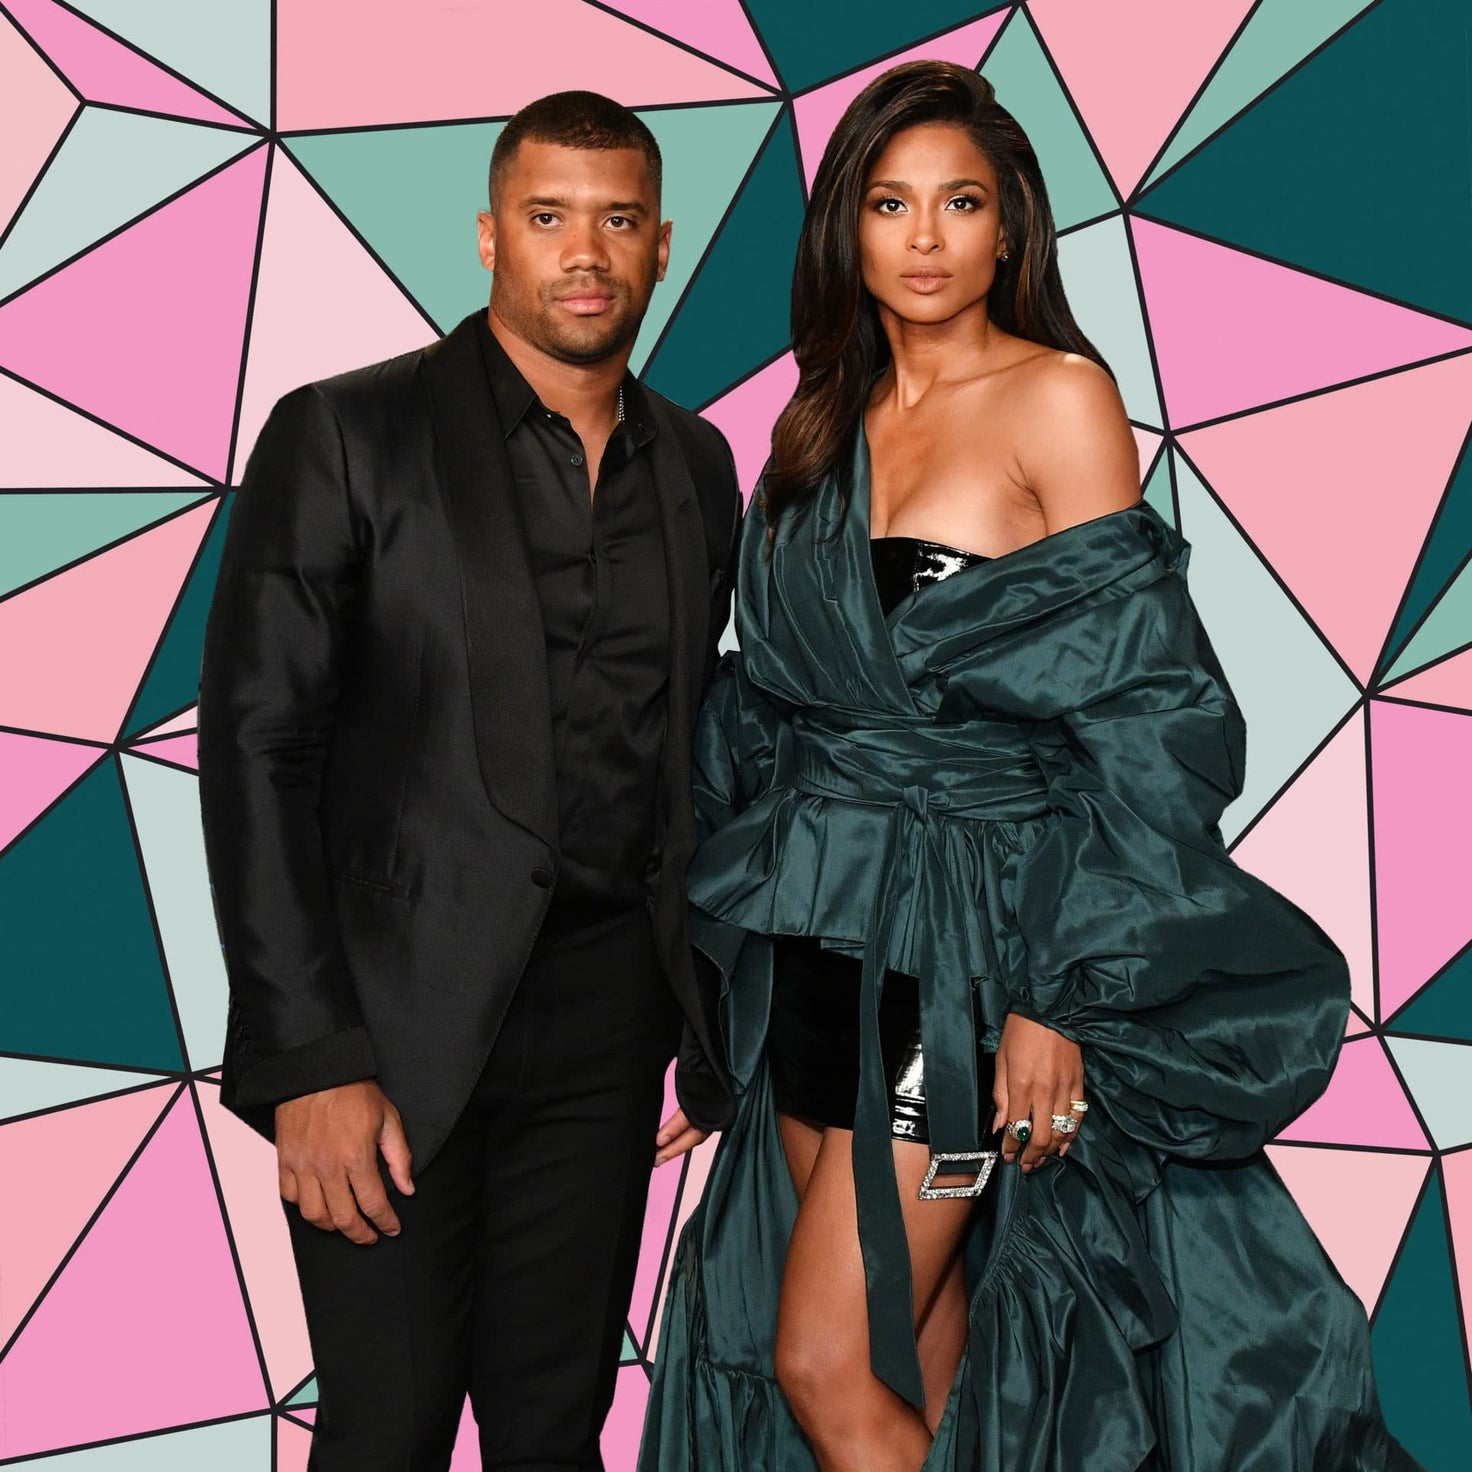 Russell Wilson Celebrates Becoming Highest Paid NFL Player By Cuddling Up To Ciara